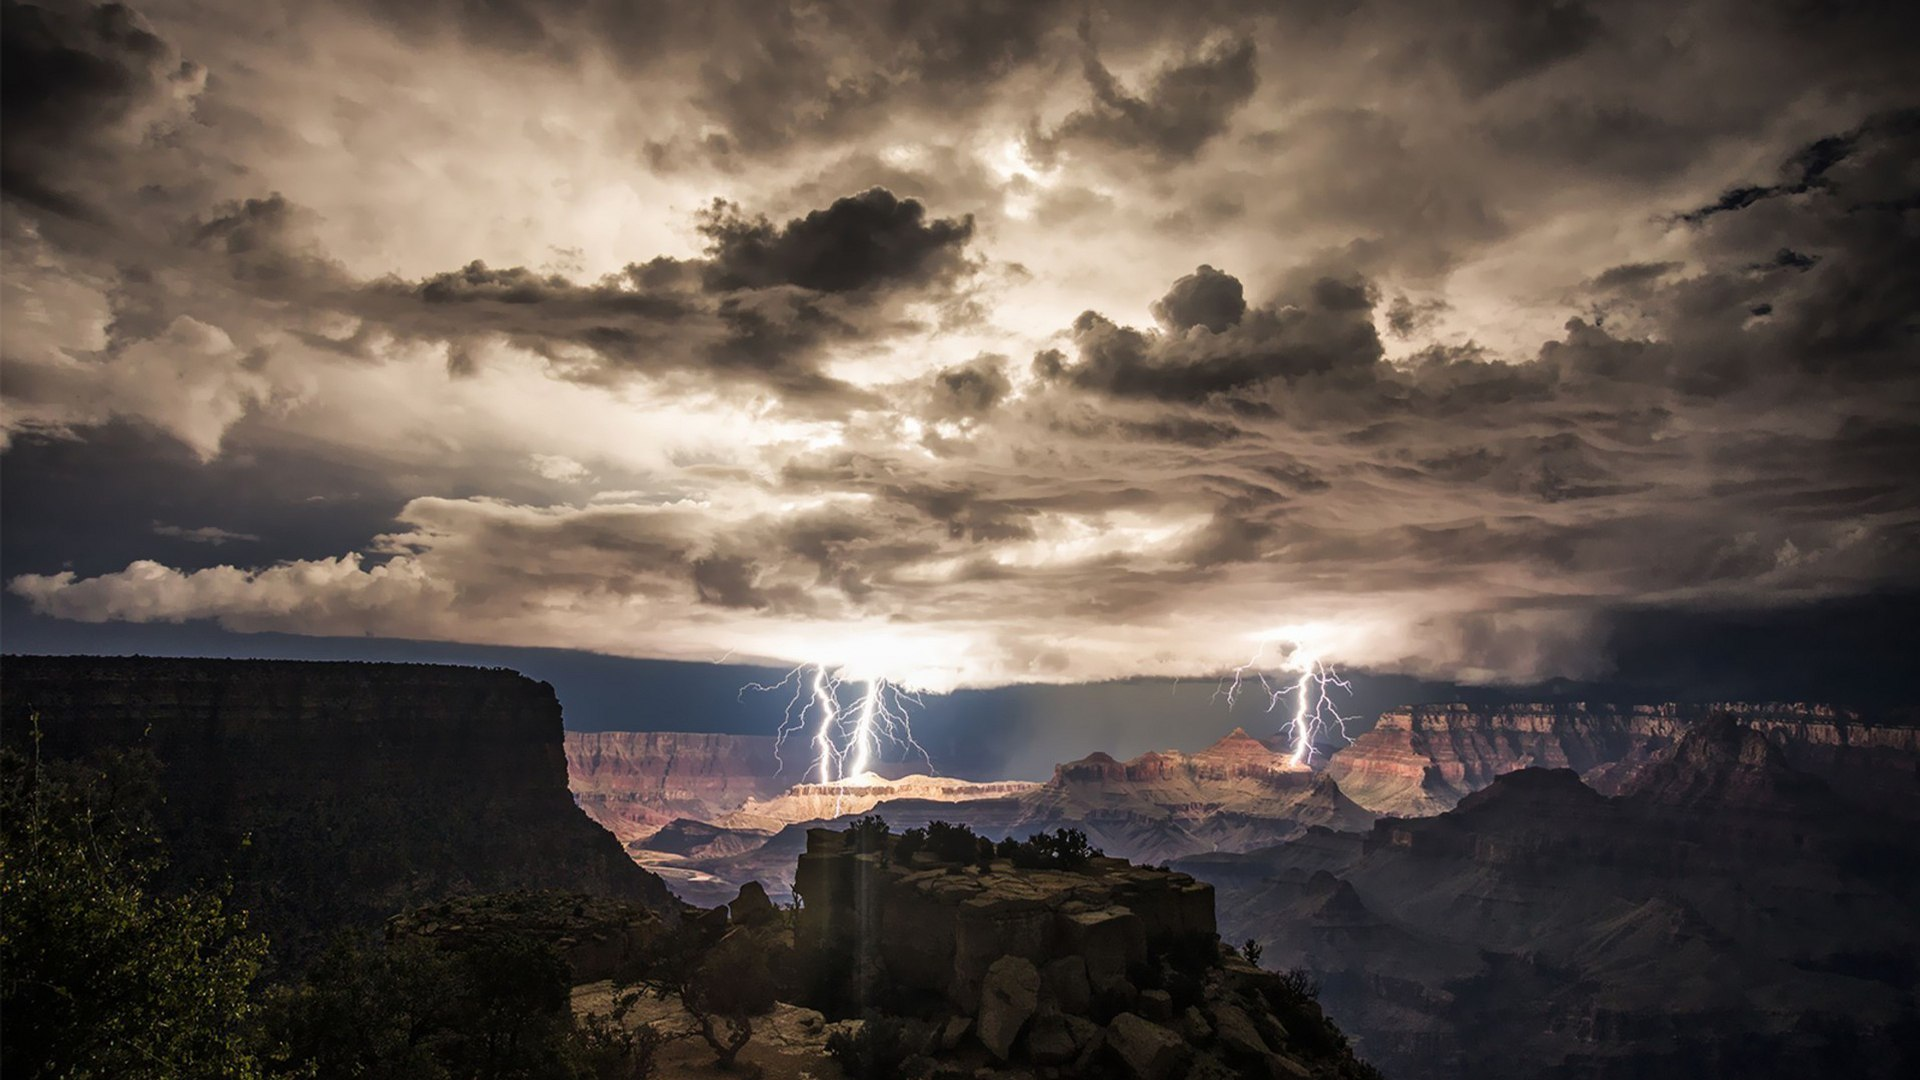 grand canyon lightning, grand canyon lightning photo, night of lightning at grand canyon, grand canyon lightning pictures, grand canyon lightnings photo, lightning at grand canyon, grand canyon lit only by lightnings, lightnings at grand canyon, thunderstorms at grand canyon